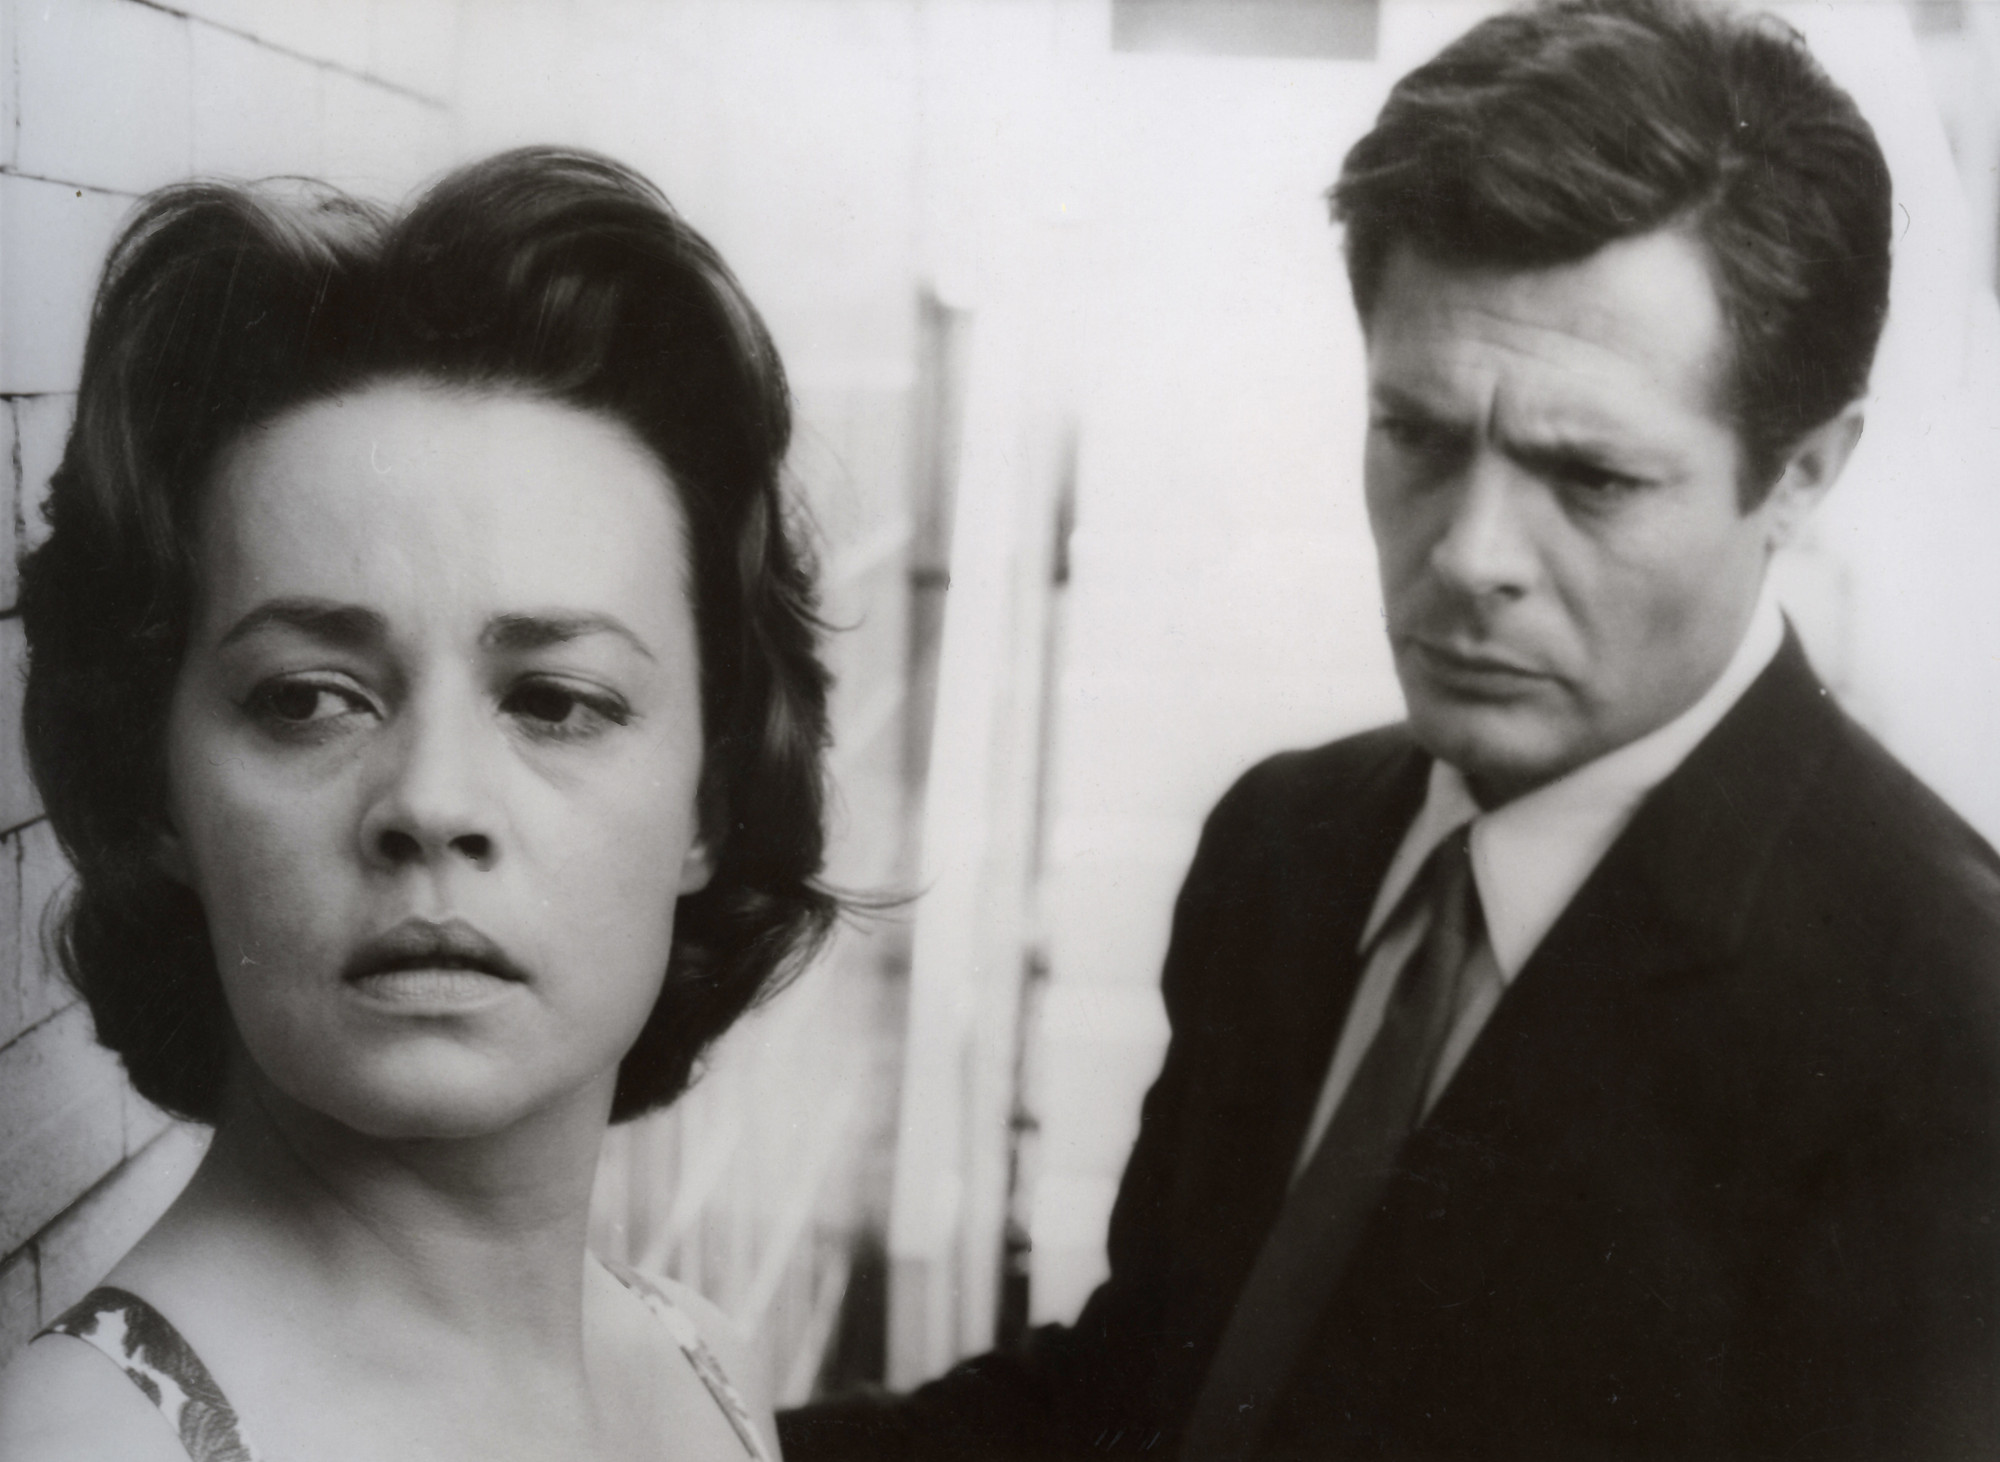 La notte. 1961. Italy/France. Directed by Michelangelo Antonioni. The Museum of Modern Art Film Stills Archive